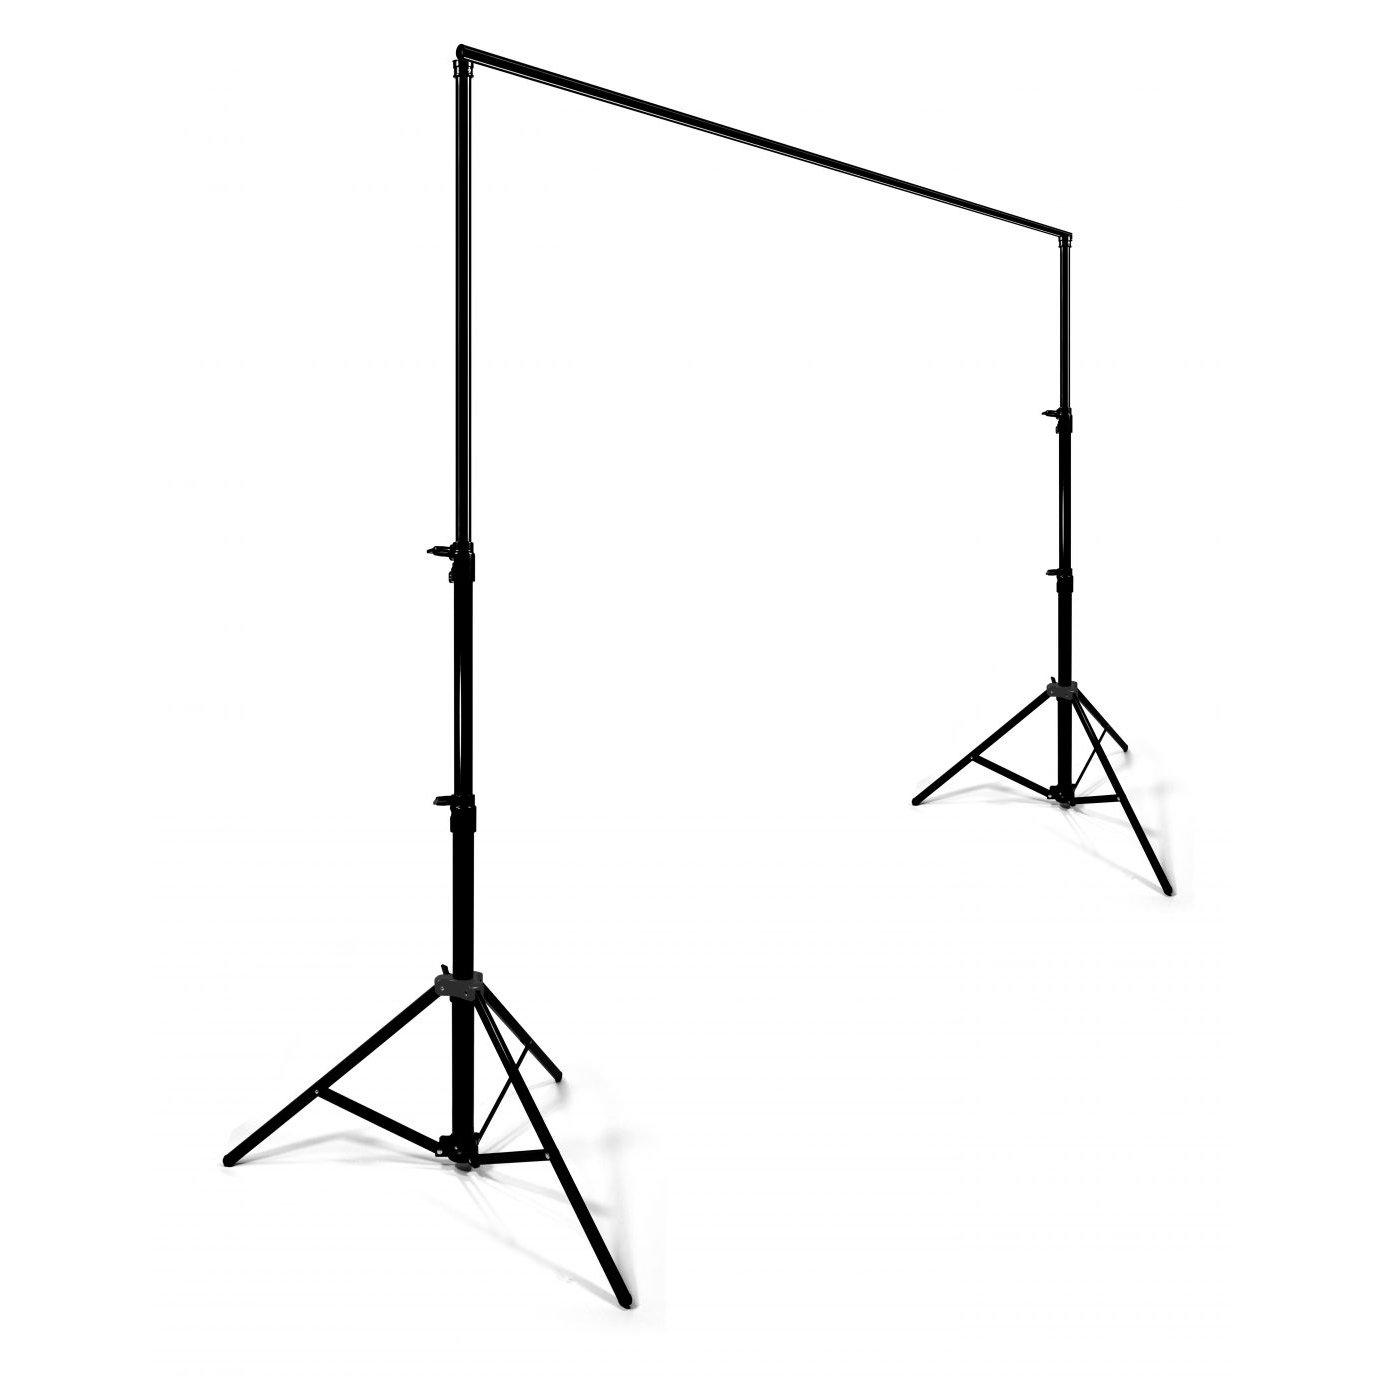 Savage 12 x 12 ft. Background Stand by Savage